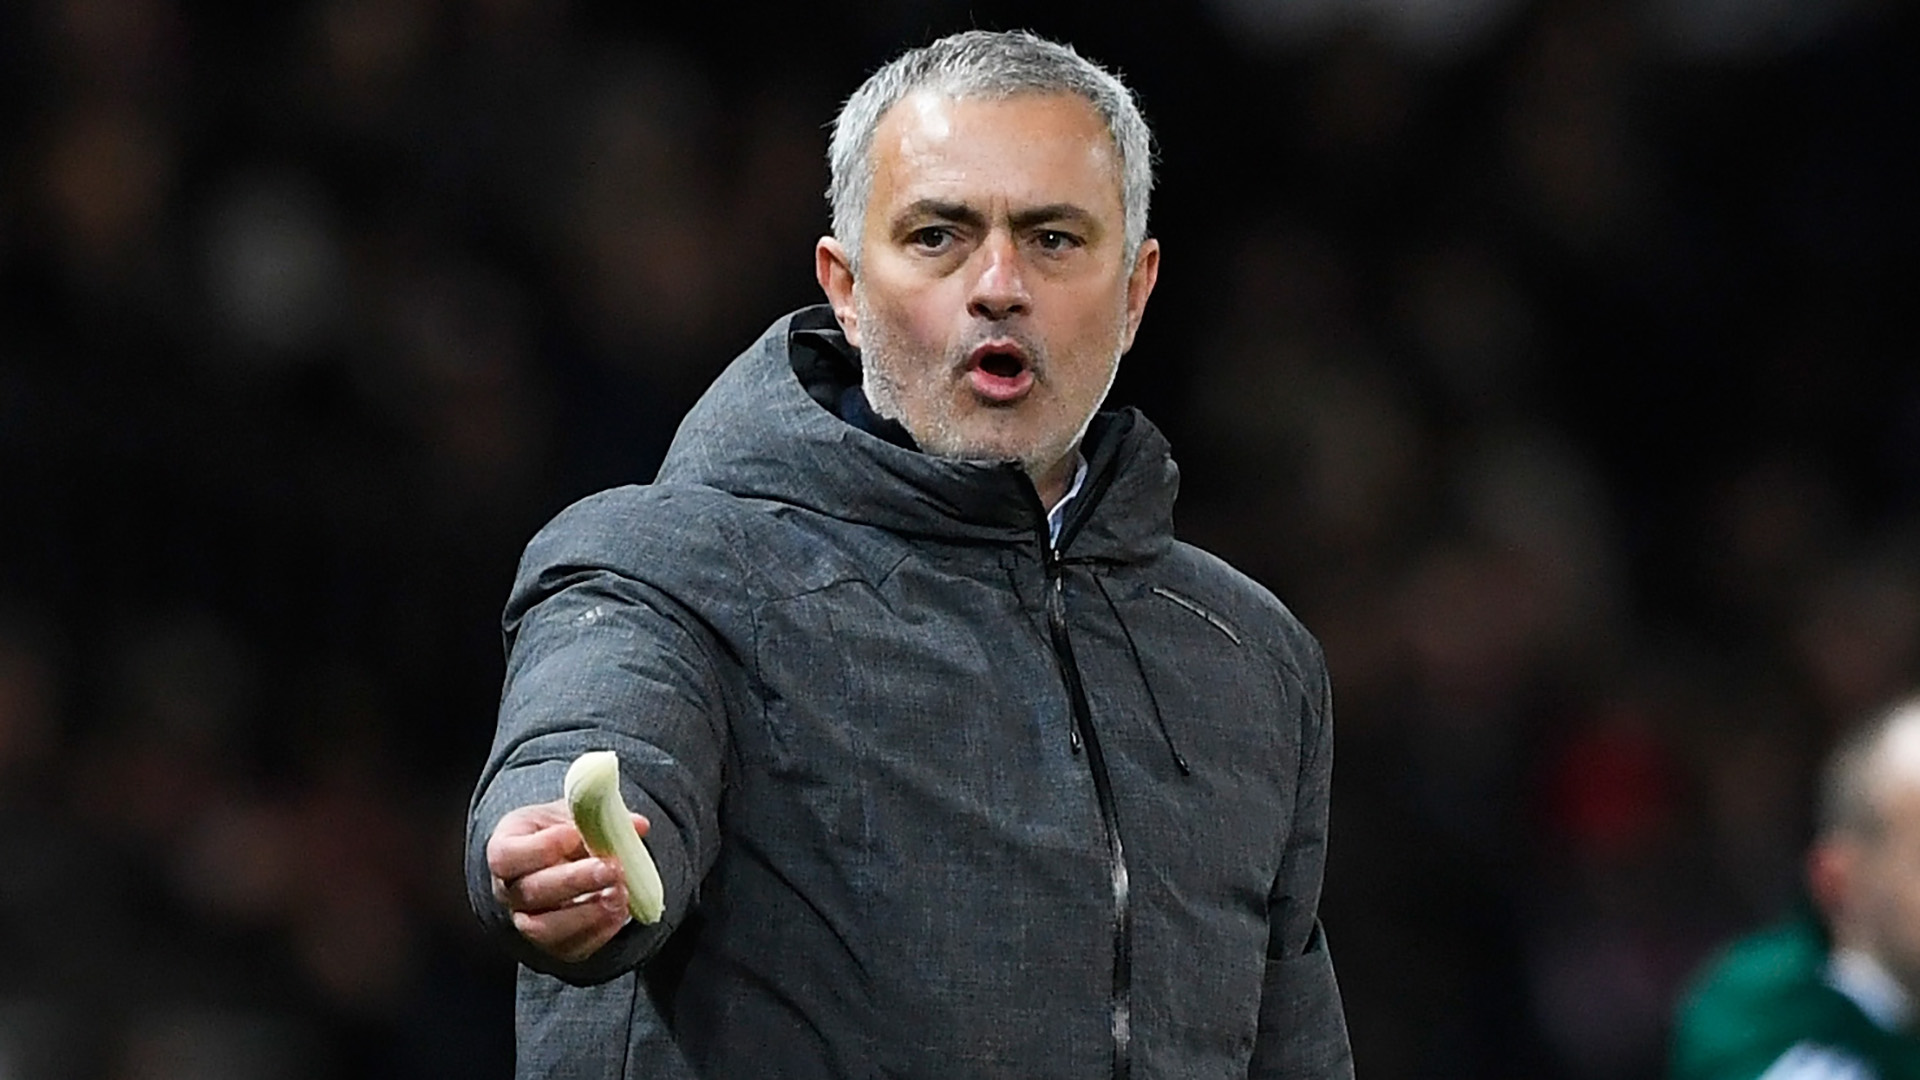 'I can't coach a team who have a manager' – Mourinho responds to Real Madrid return rumours